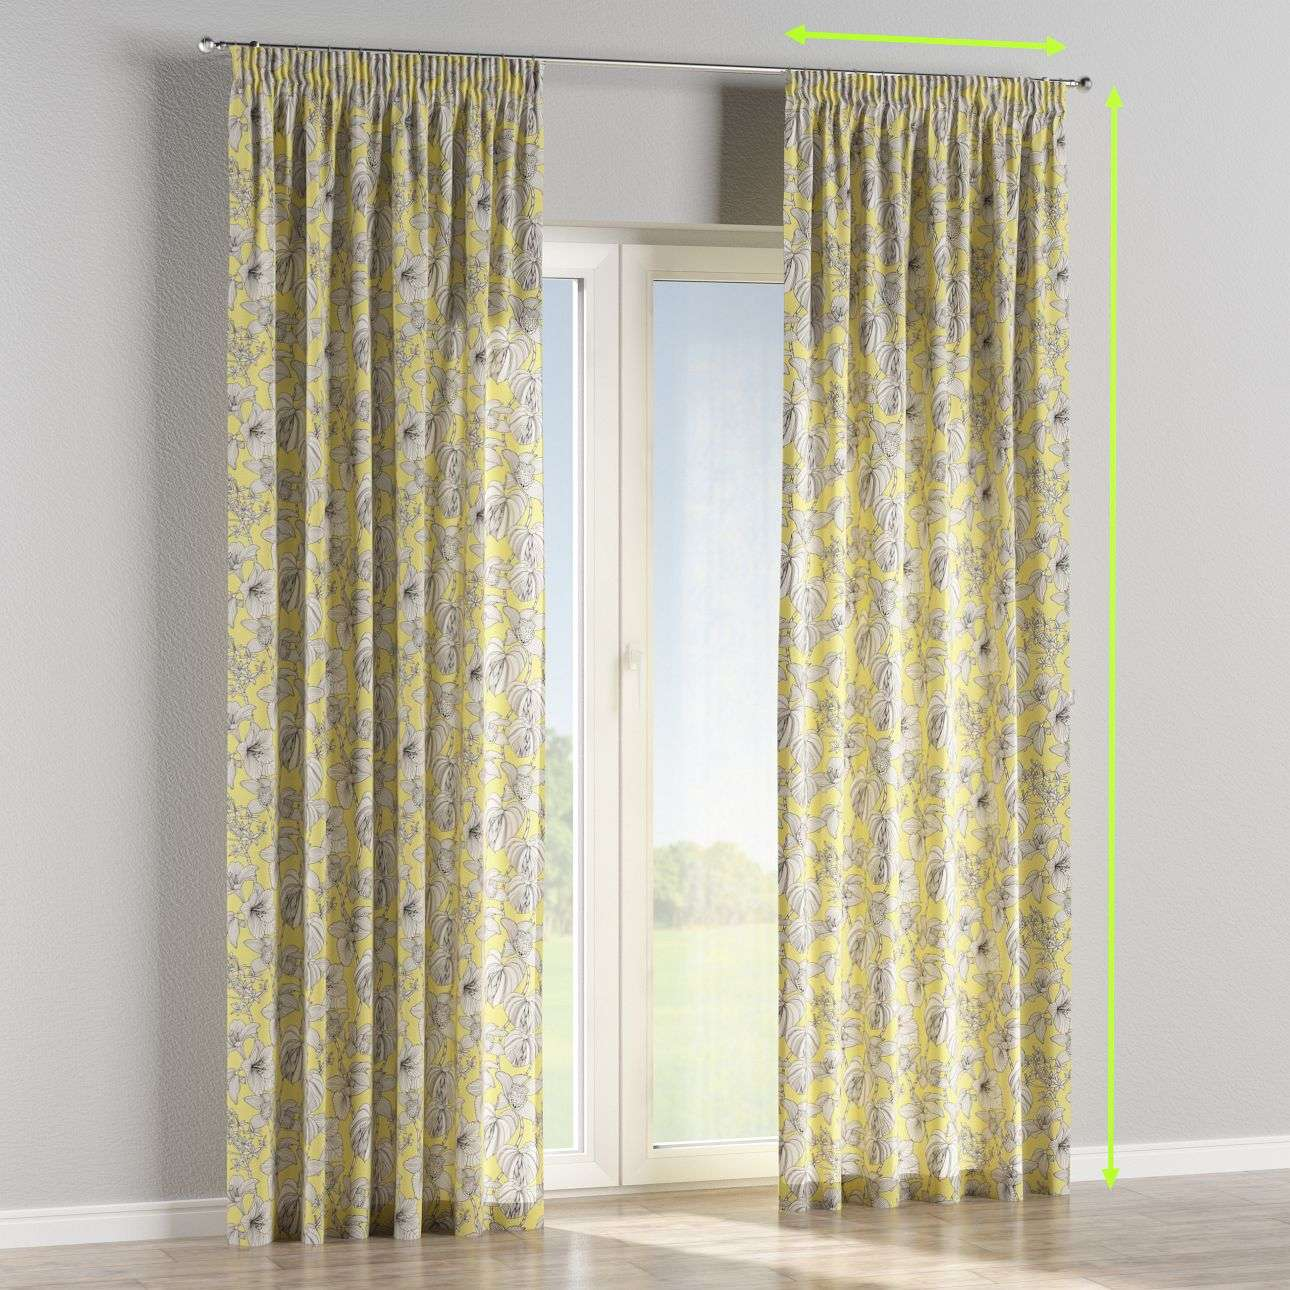 Pencil pleat curtain in collection SALE, fabric: 137-78